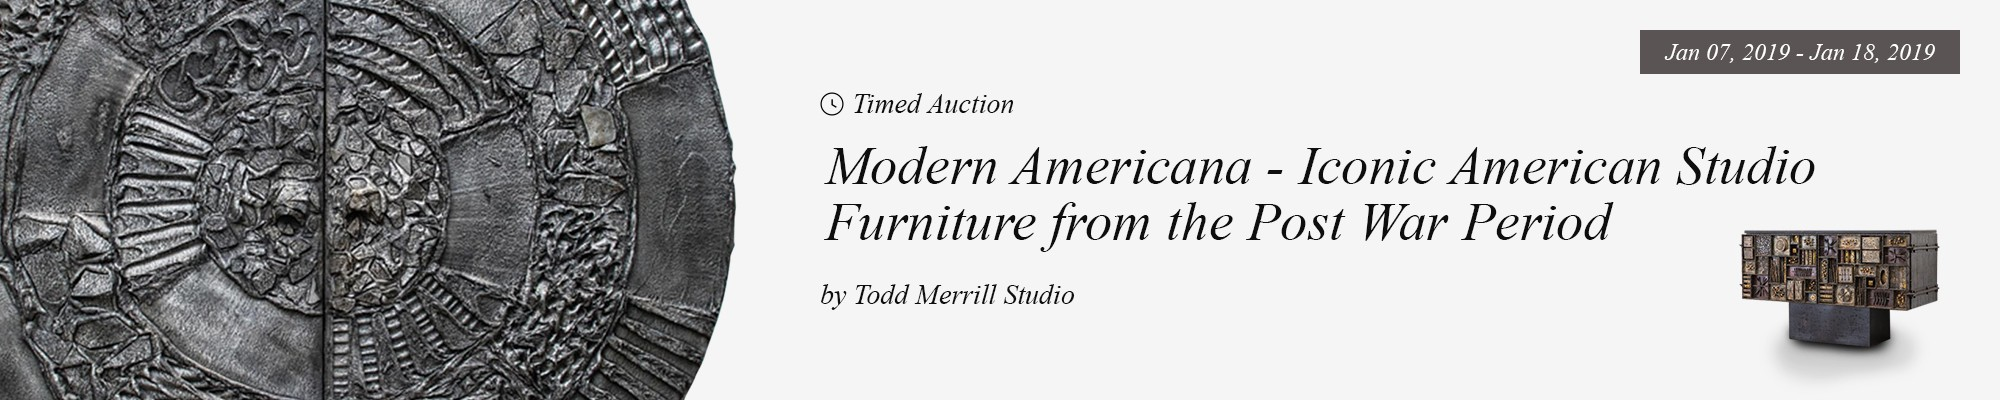 modern-americana---iconic-american-studio-furniture-from-the-post-war-period-todd-merrill/